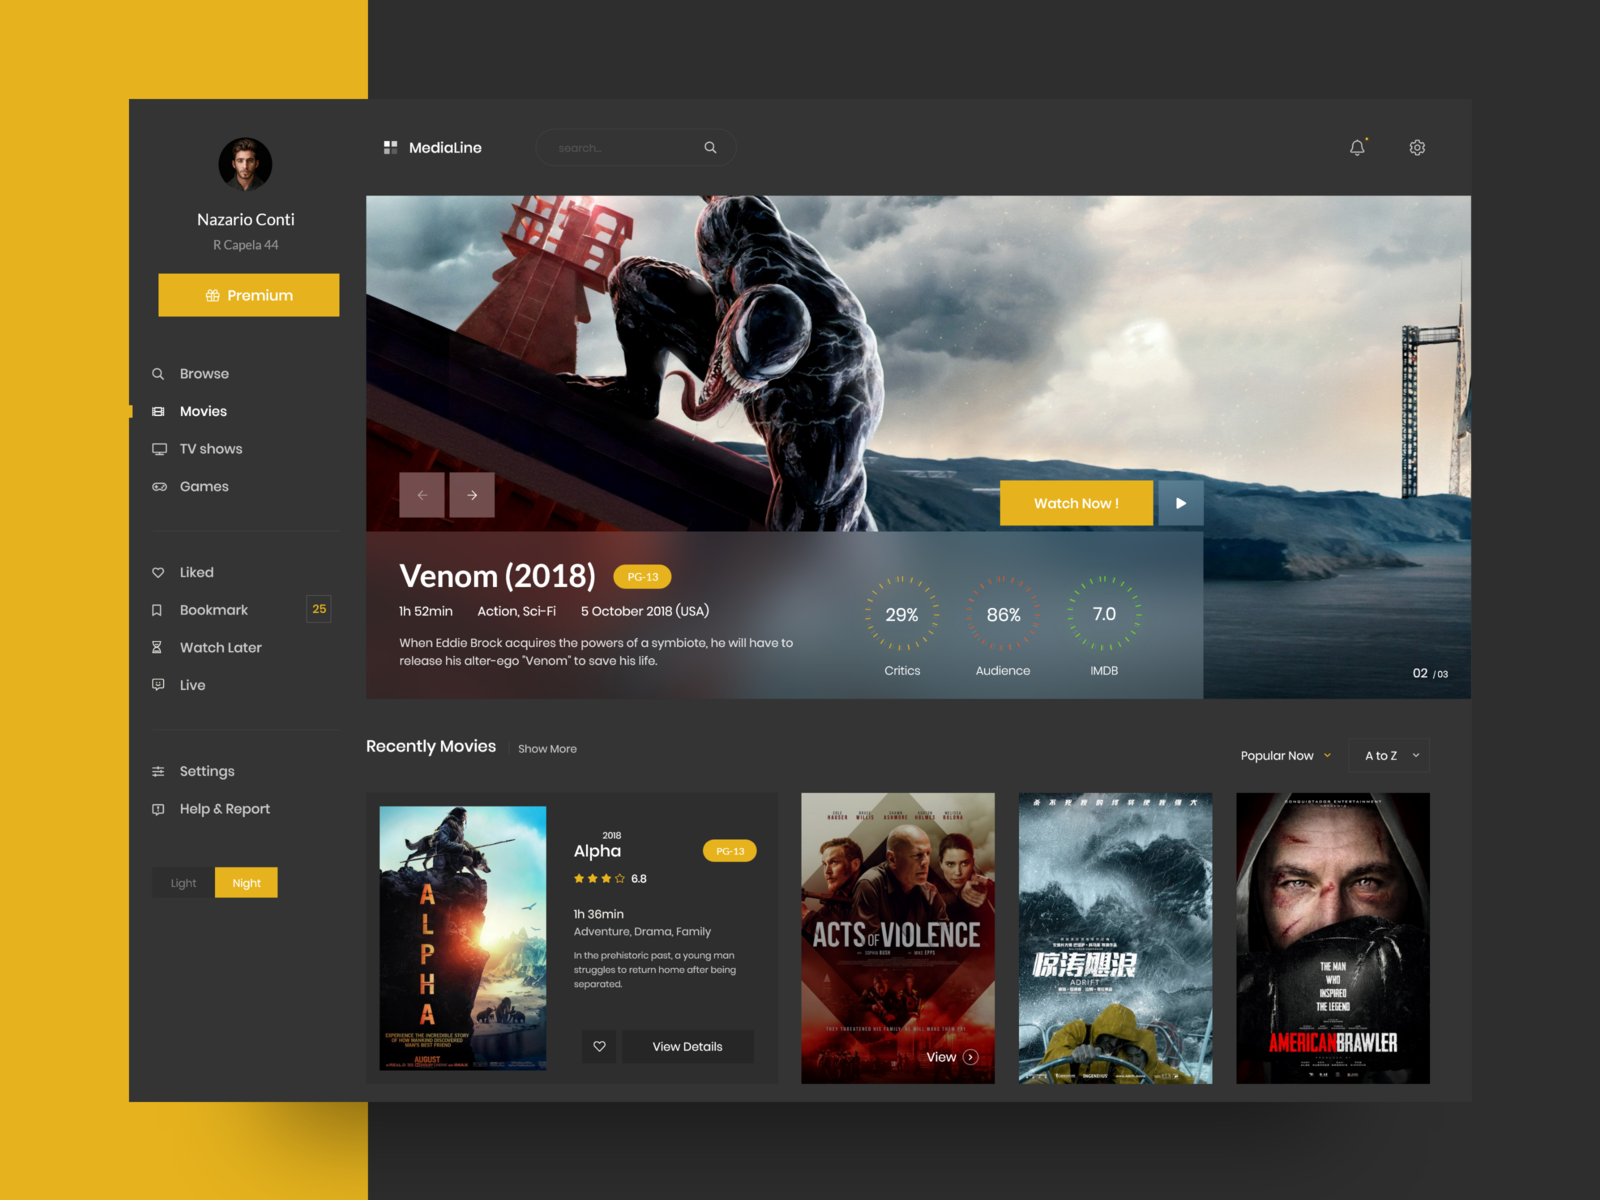 Watch Movie Website Design Web Design Examples Design